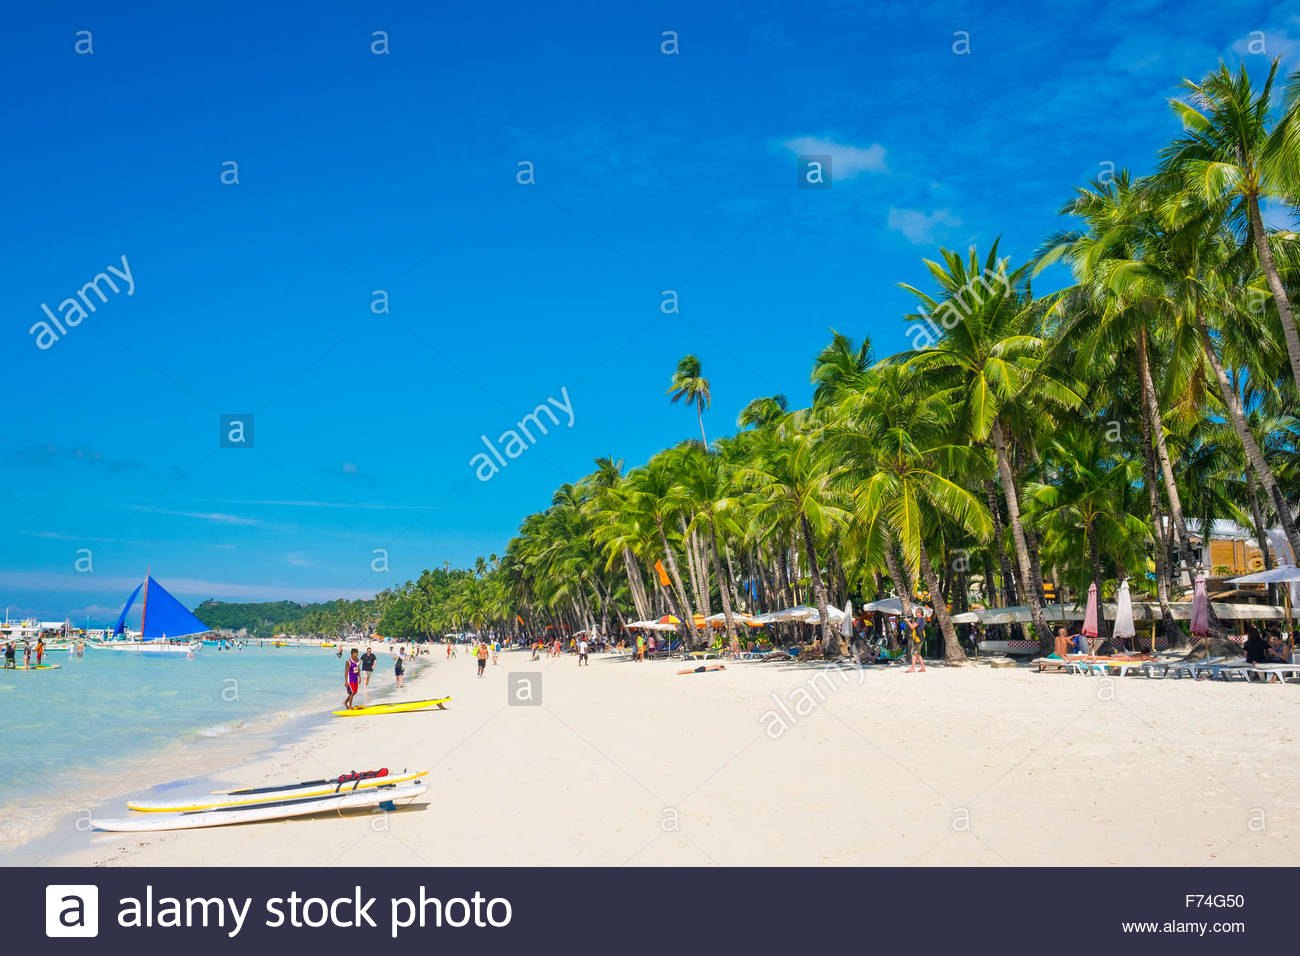 White sand and palm trees on White Beach, Boracay Island